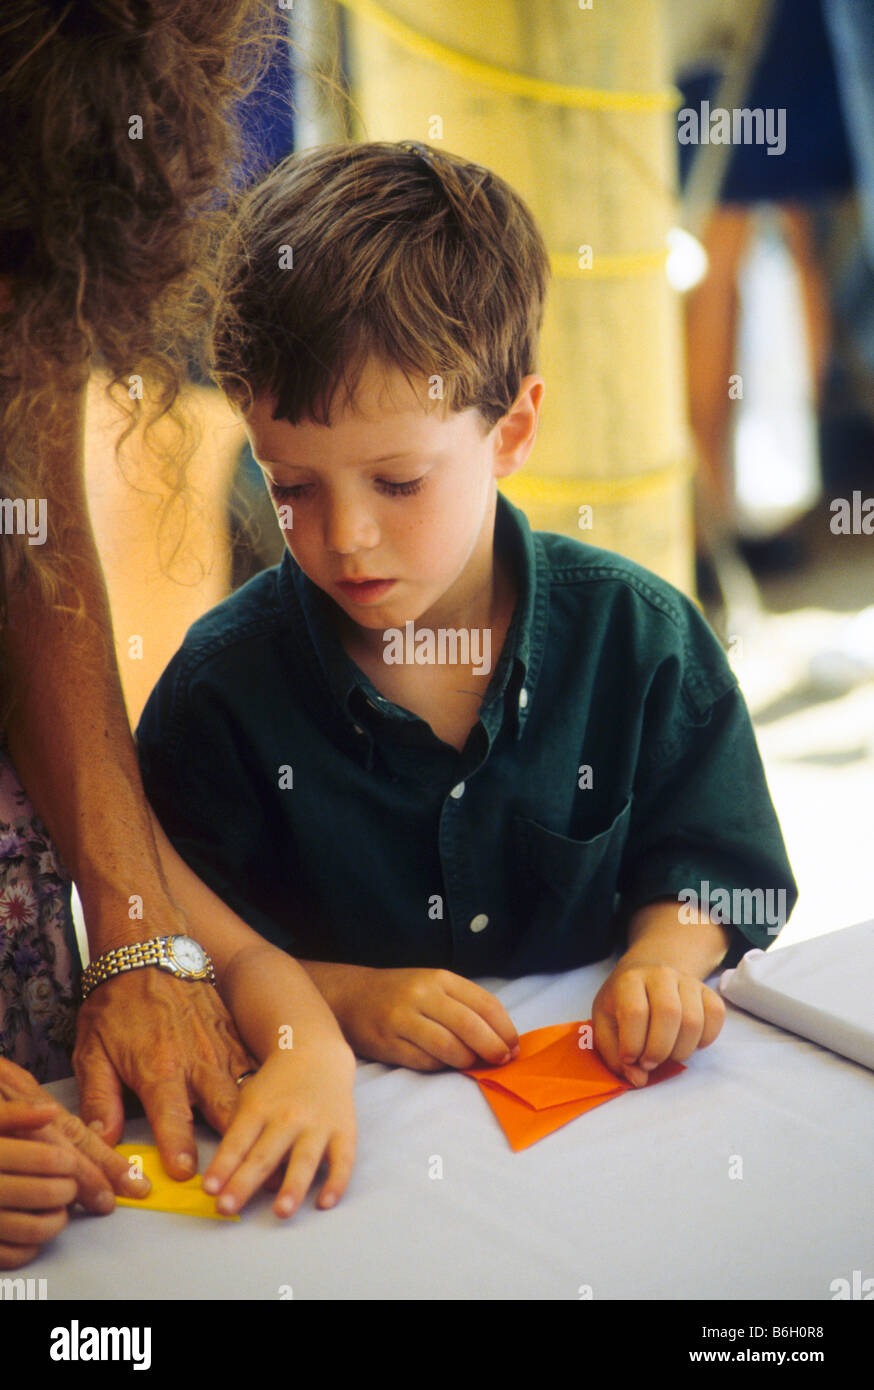 Young boy gets guidance from adult as he makes folded paper art project. - Stock Image